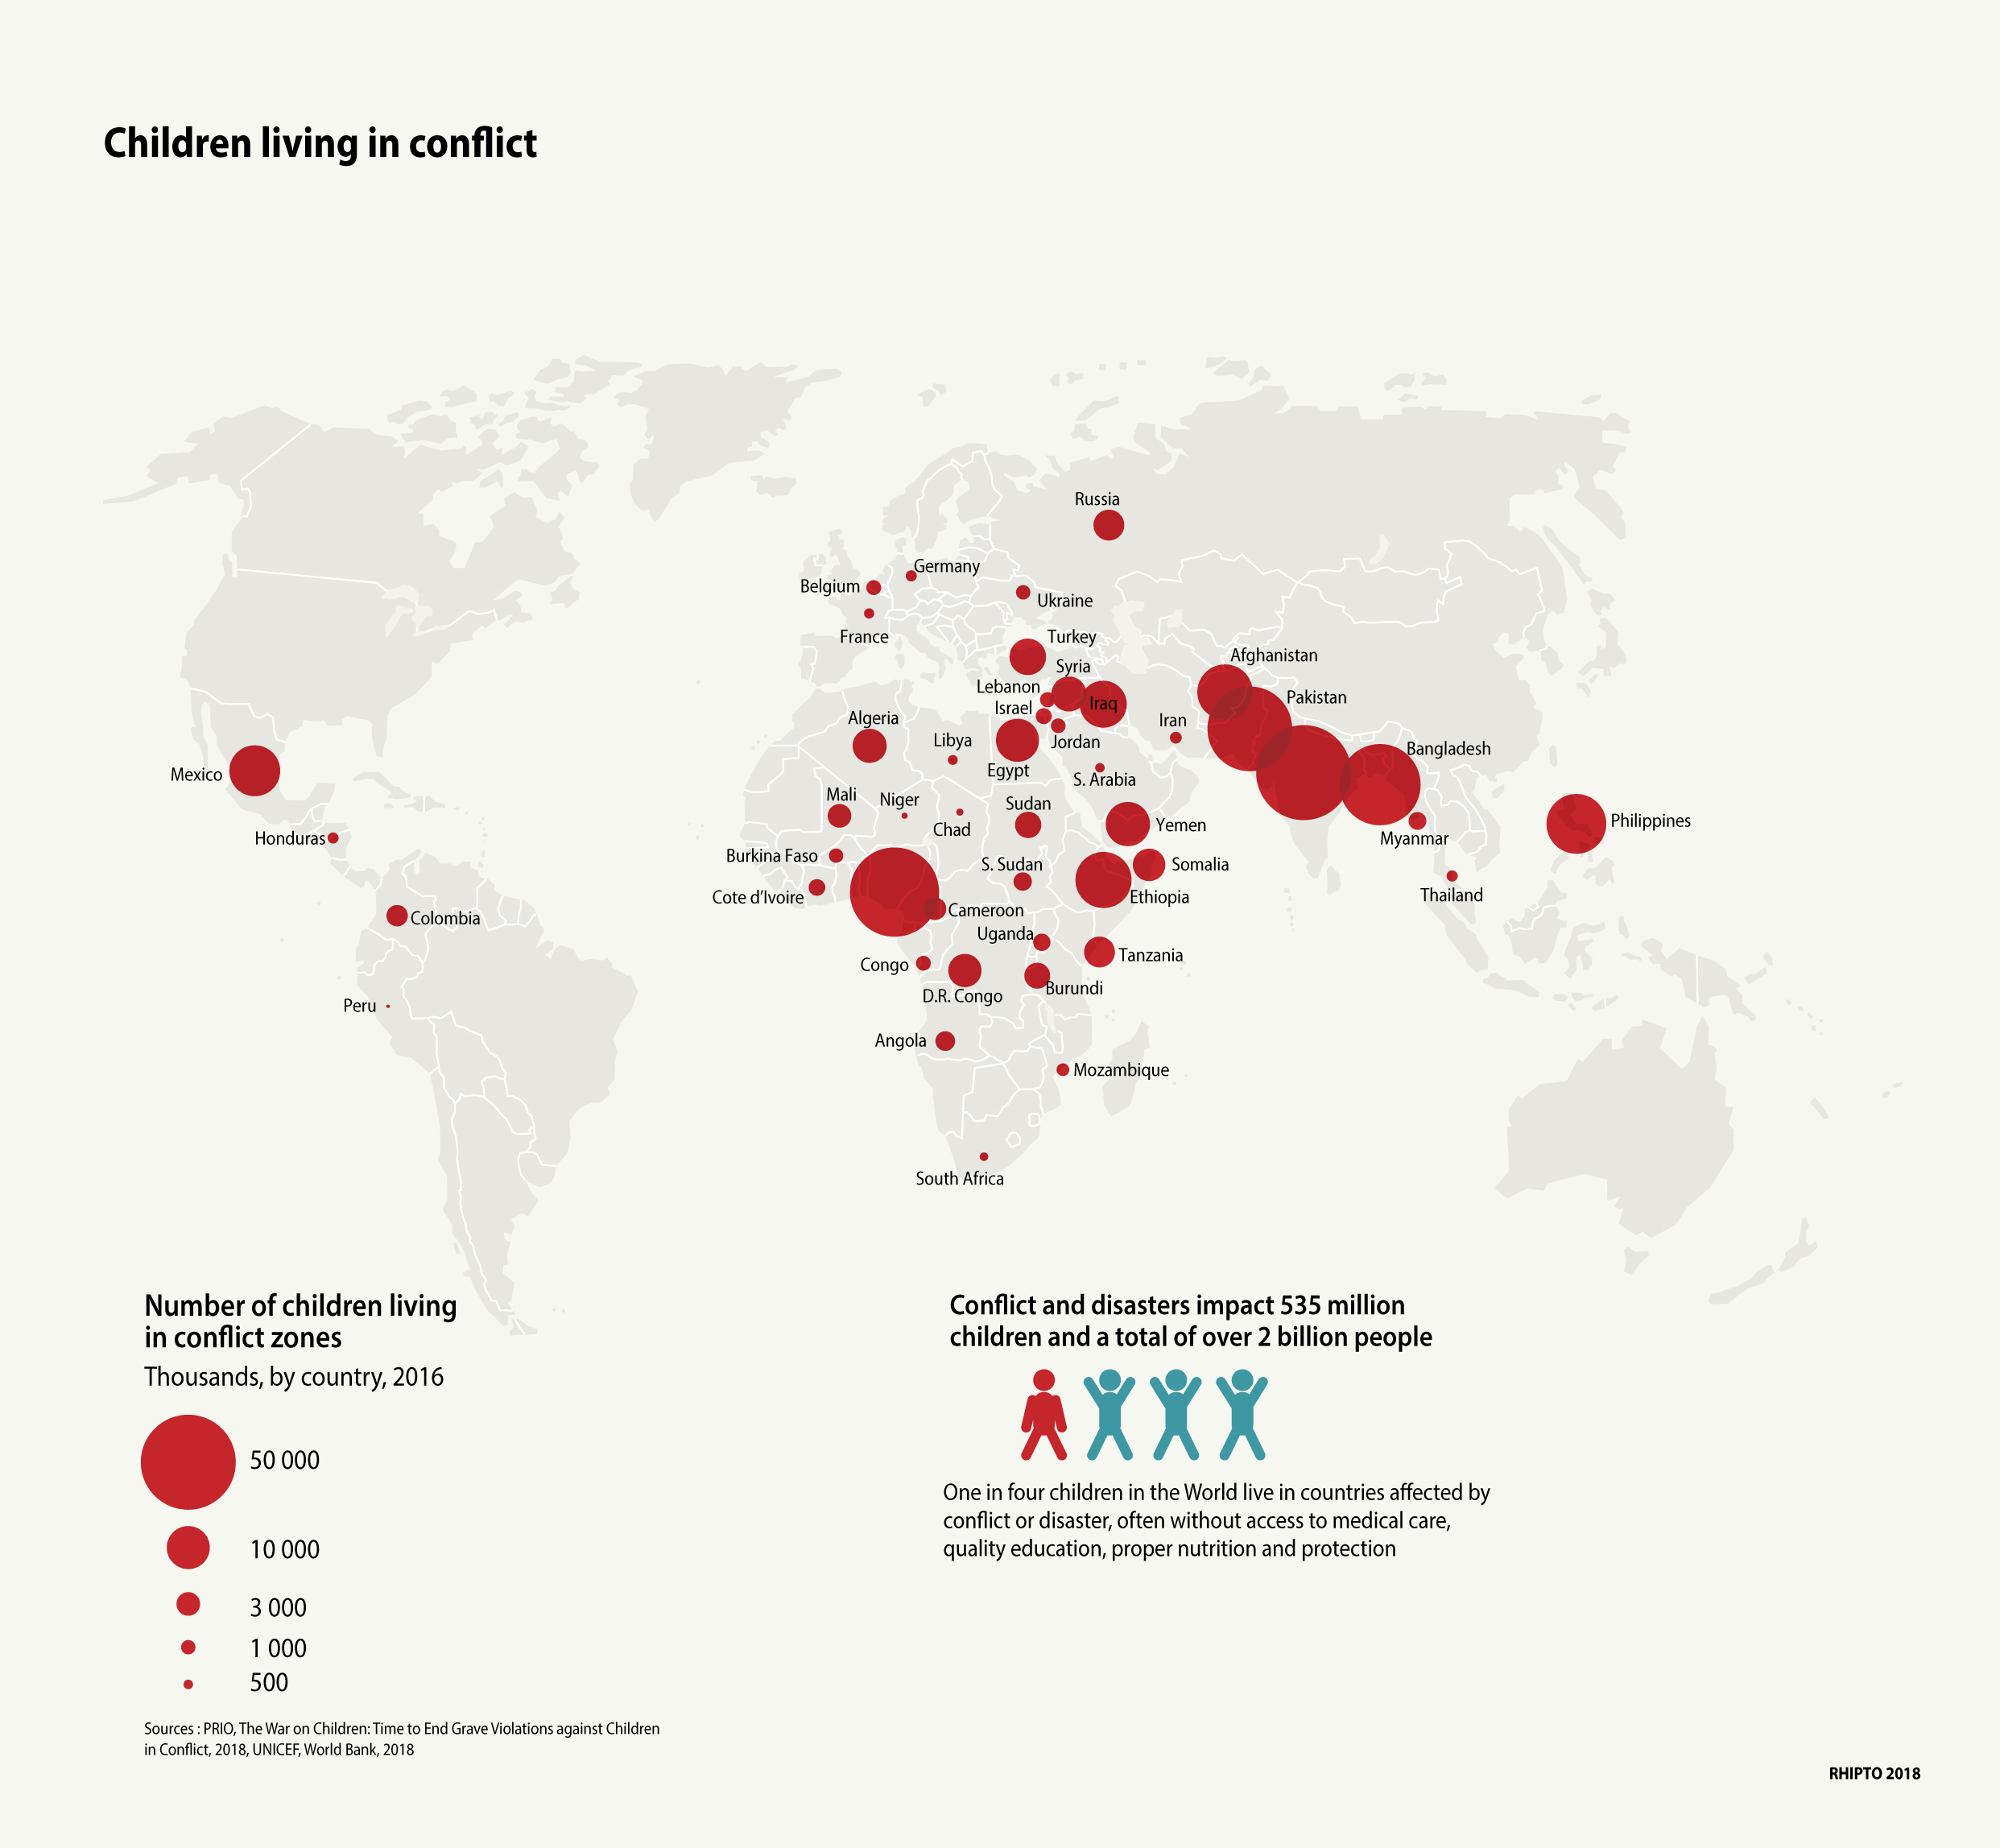 Children in conflict areas